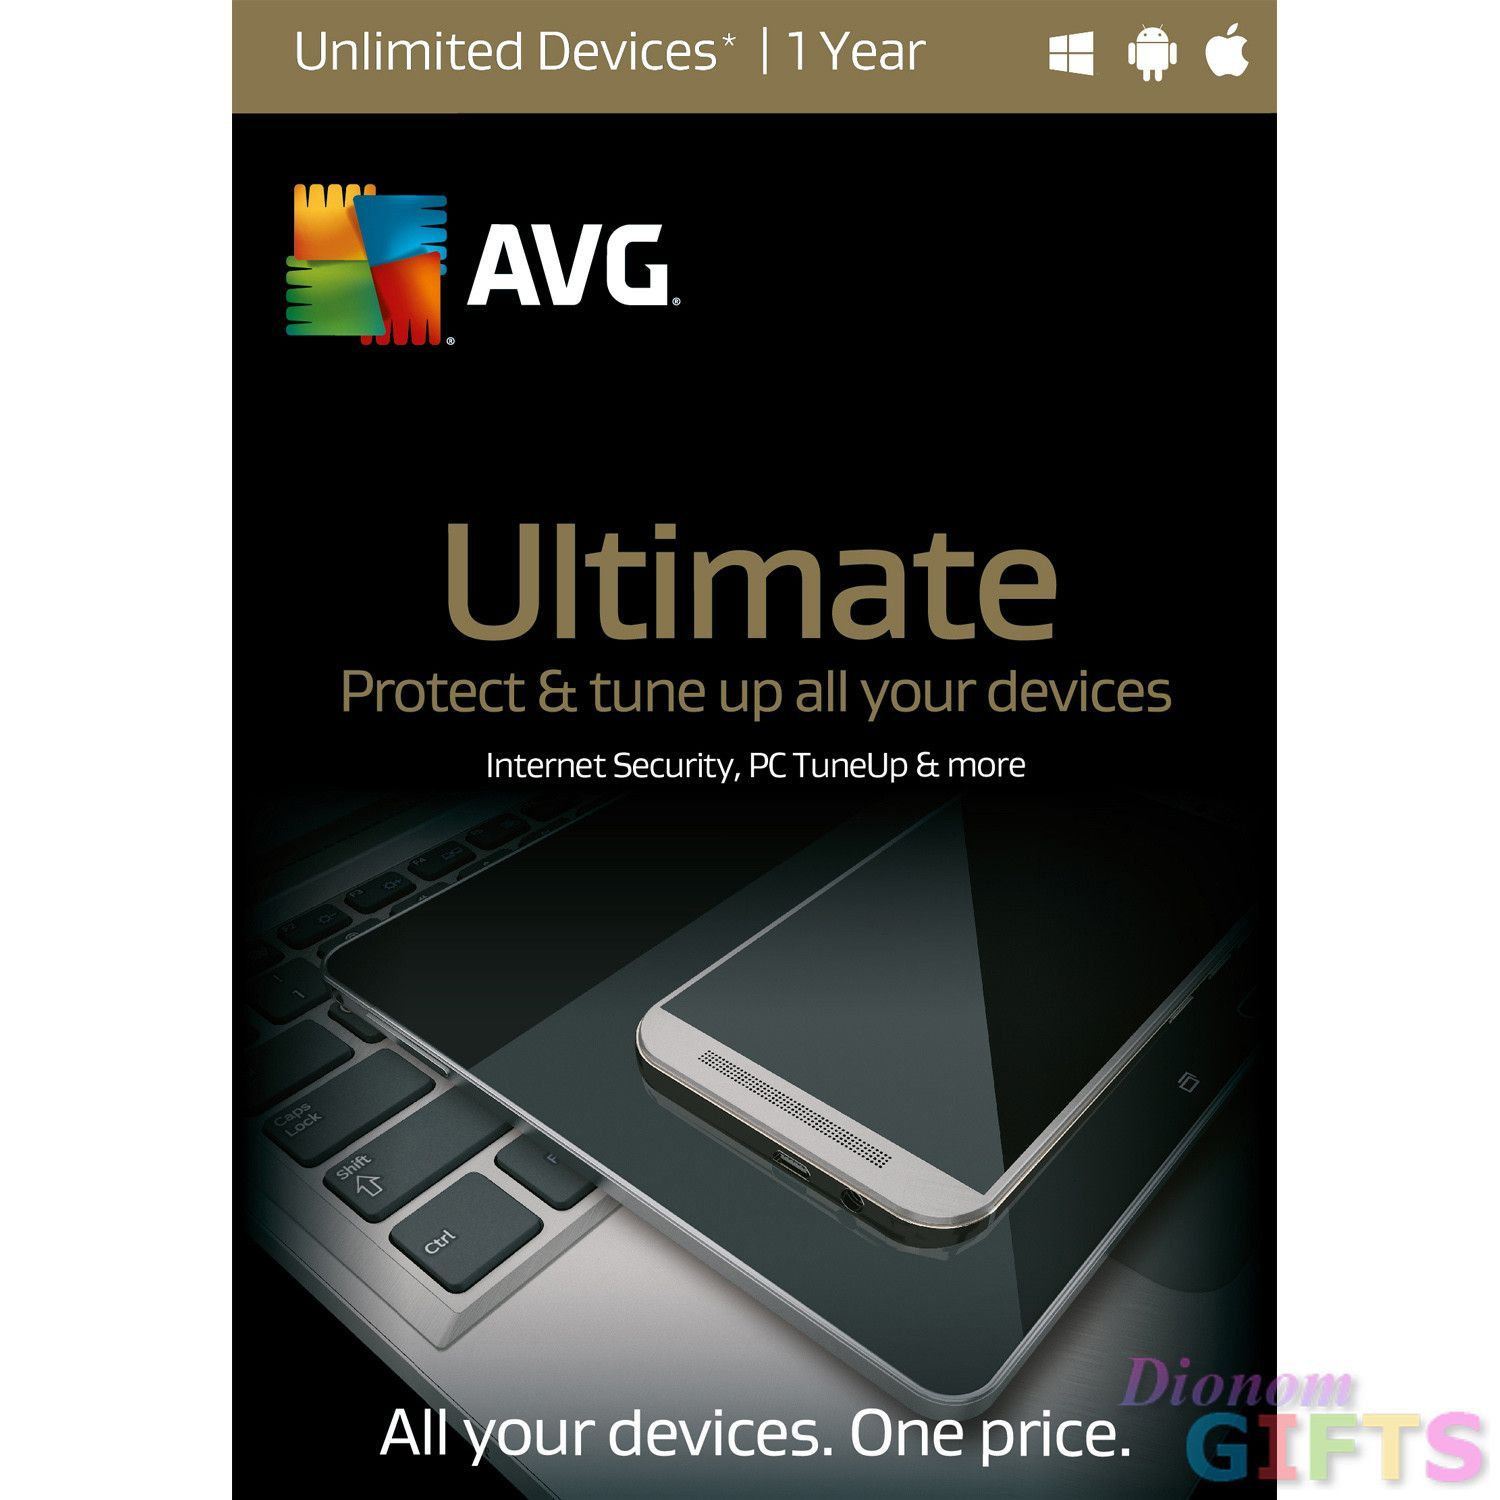 AVG ULTIMATE, 1 YEAR (WIN XP,VISTA,WIN 7,WIN 8,WIN 10MAC OS X,10.8 OR LATER/ANDROID BAS)